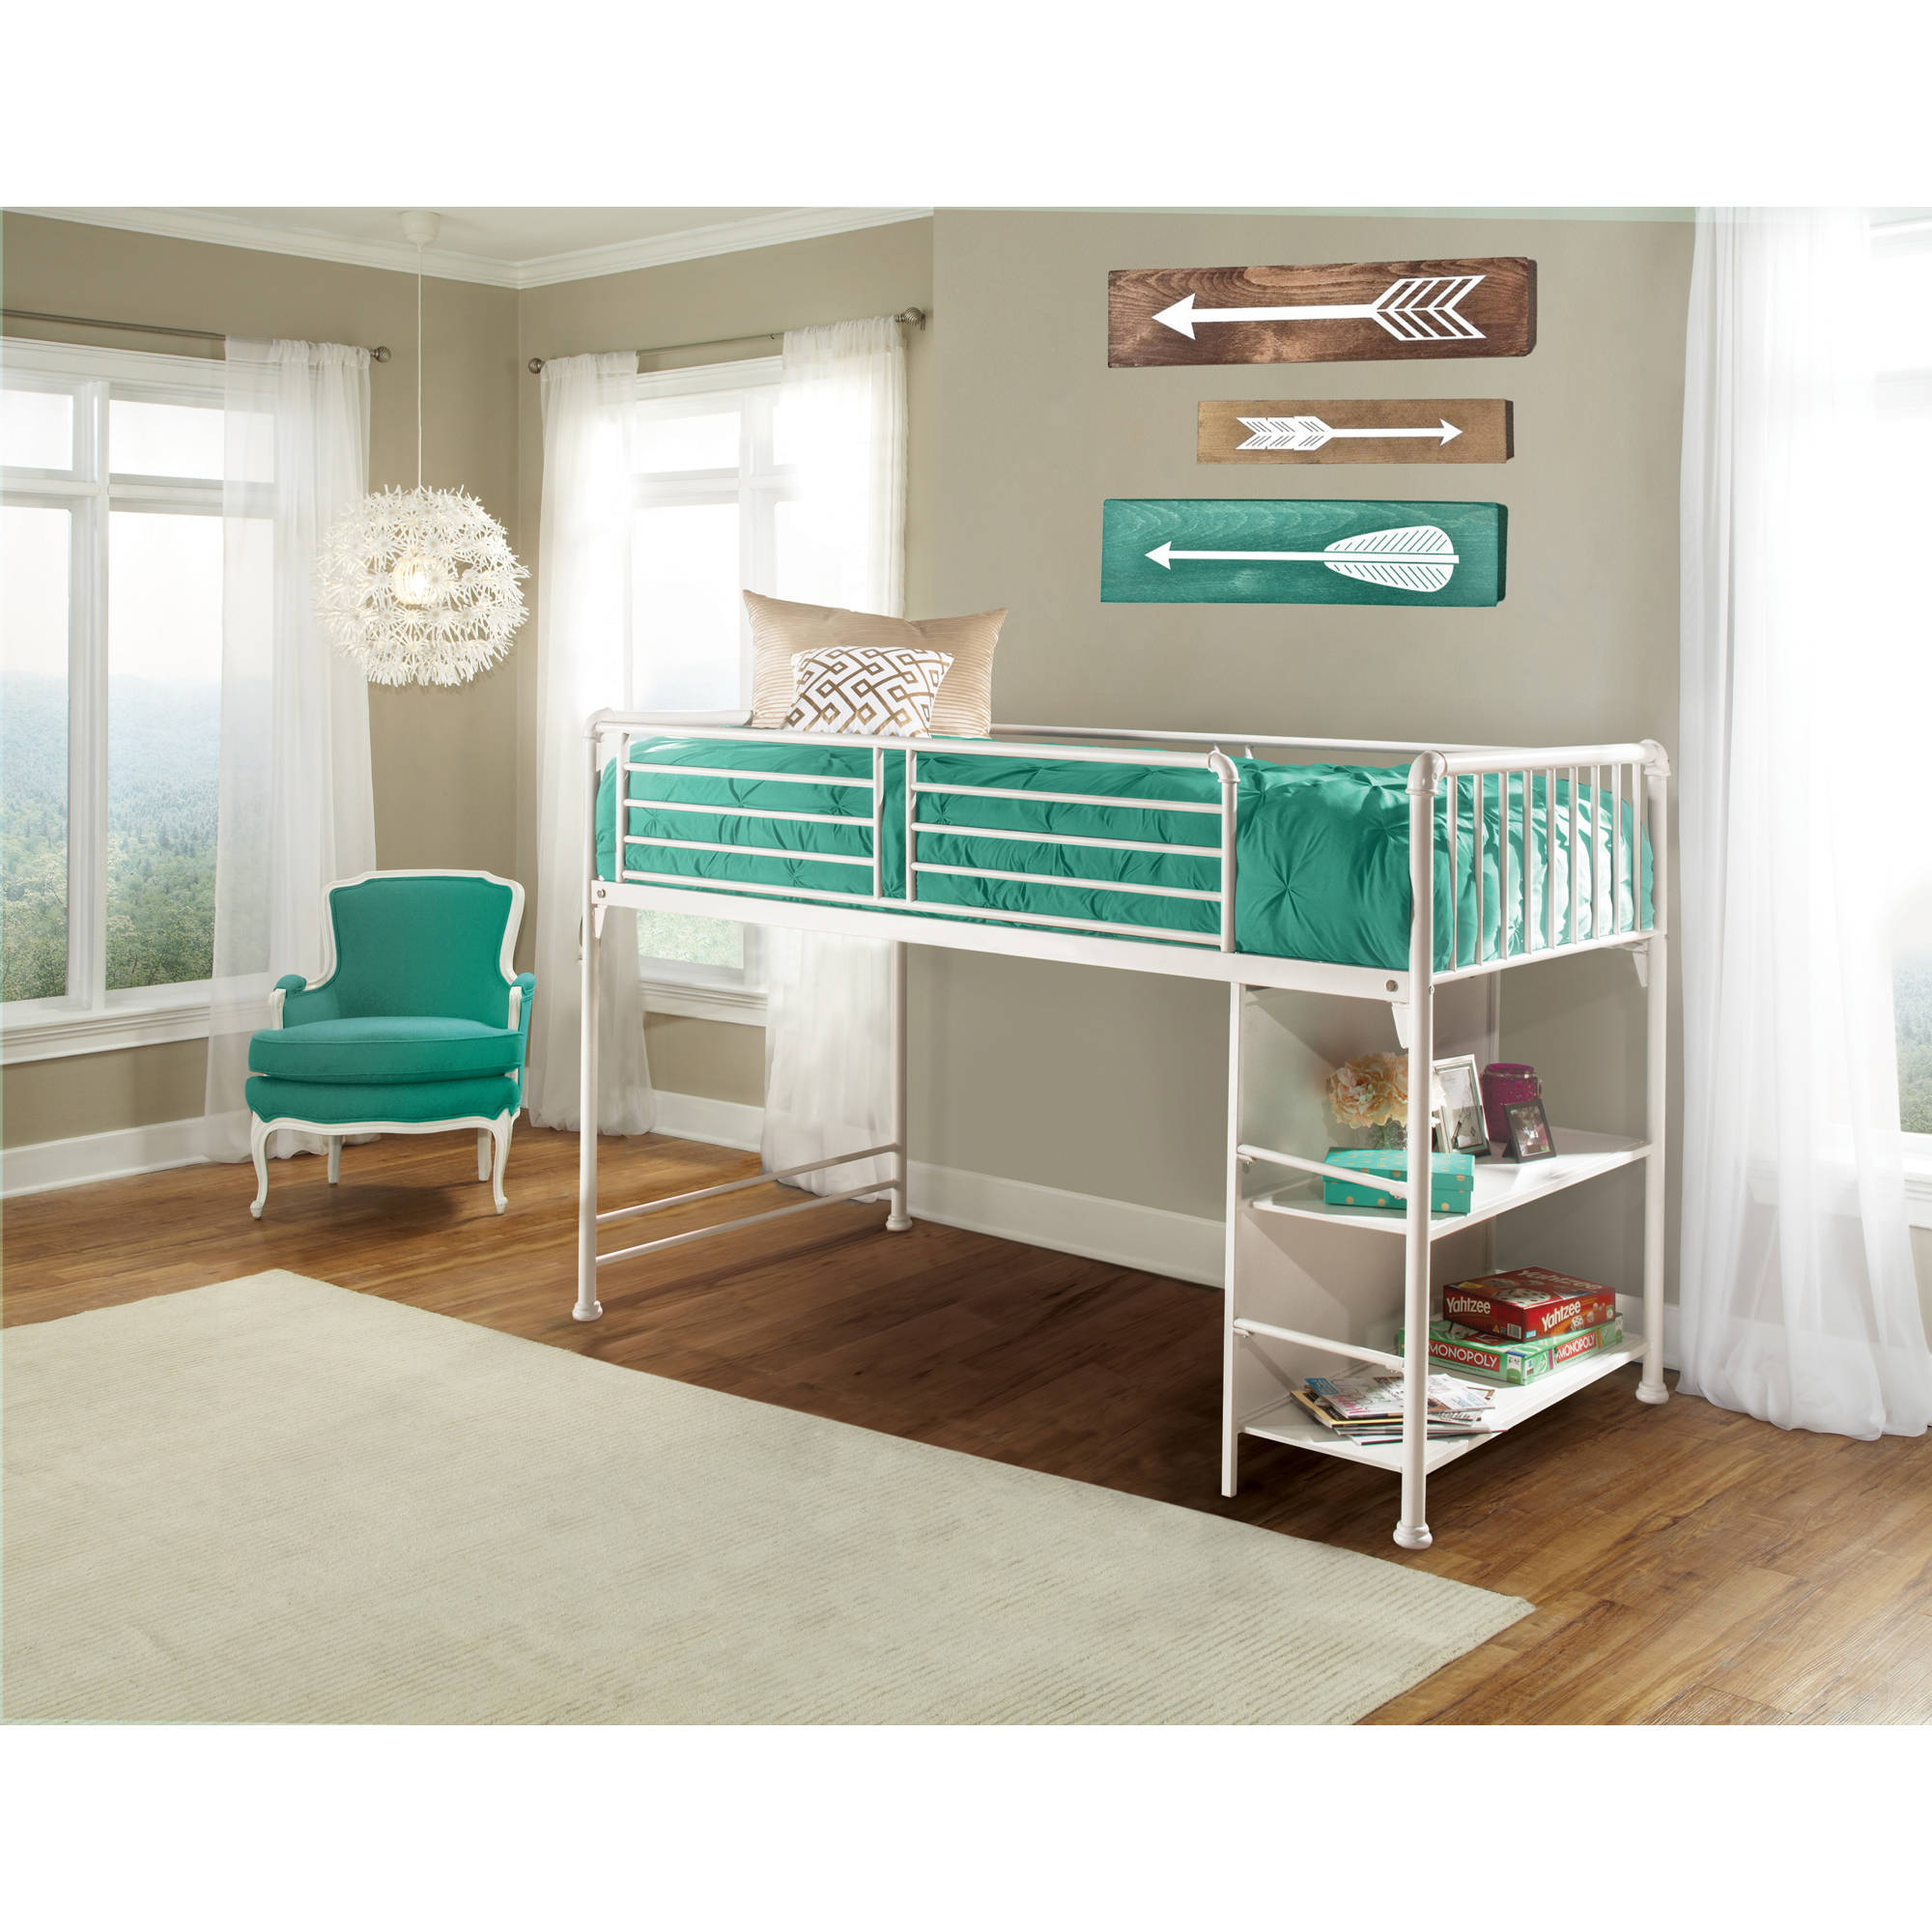 Hillsdale Furniture Brandi Junior Loft Bed